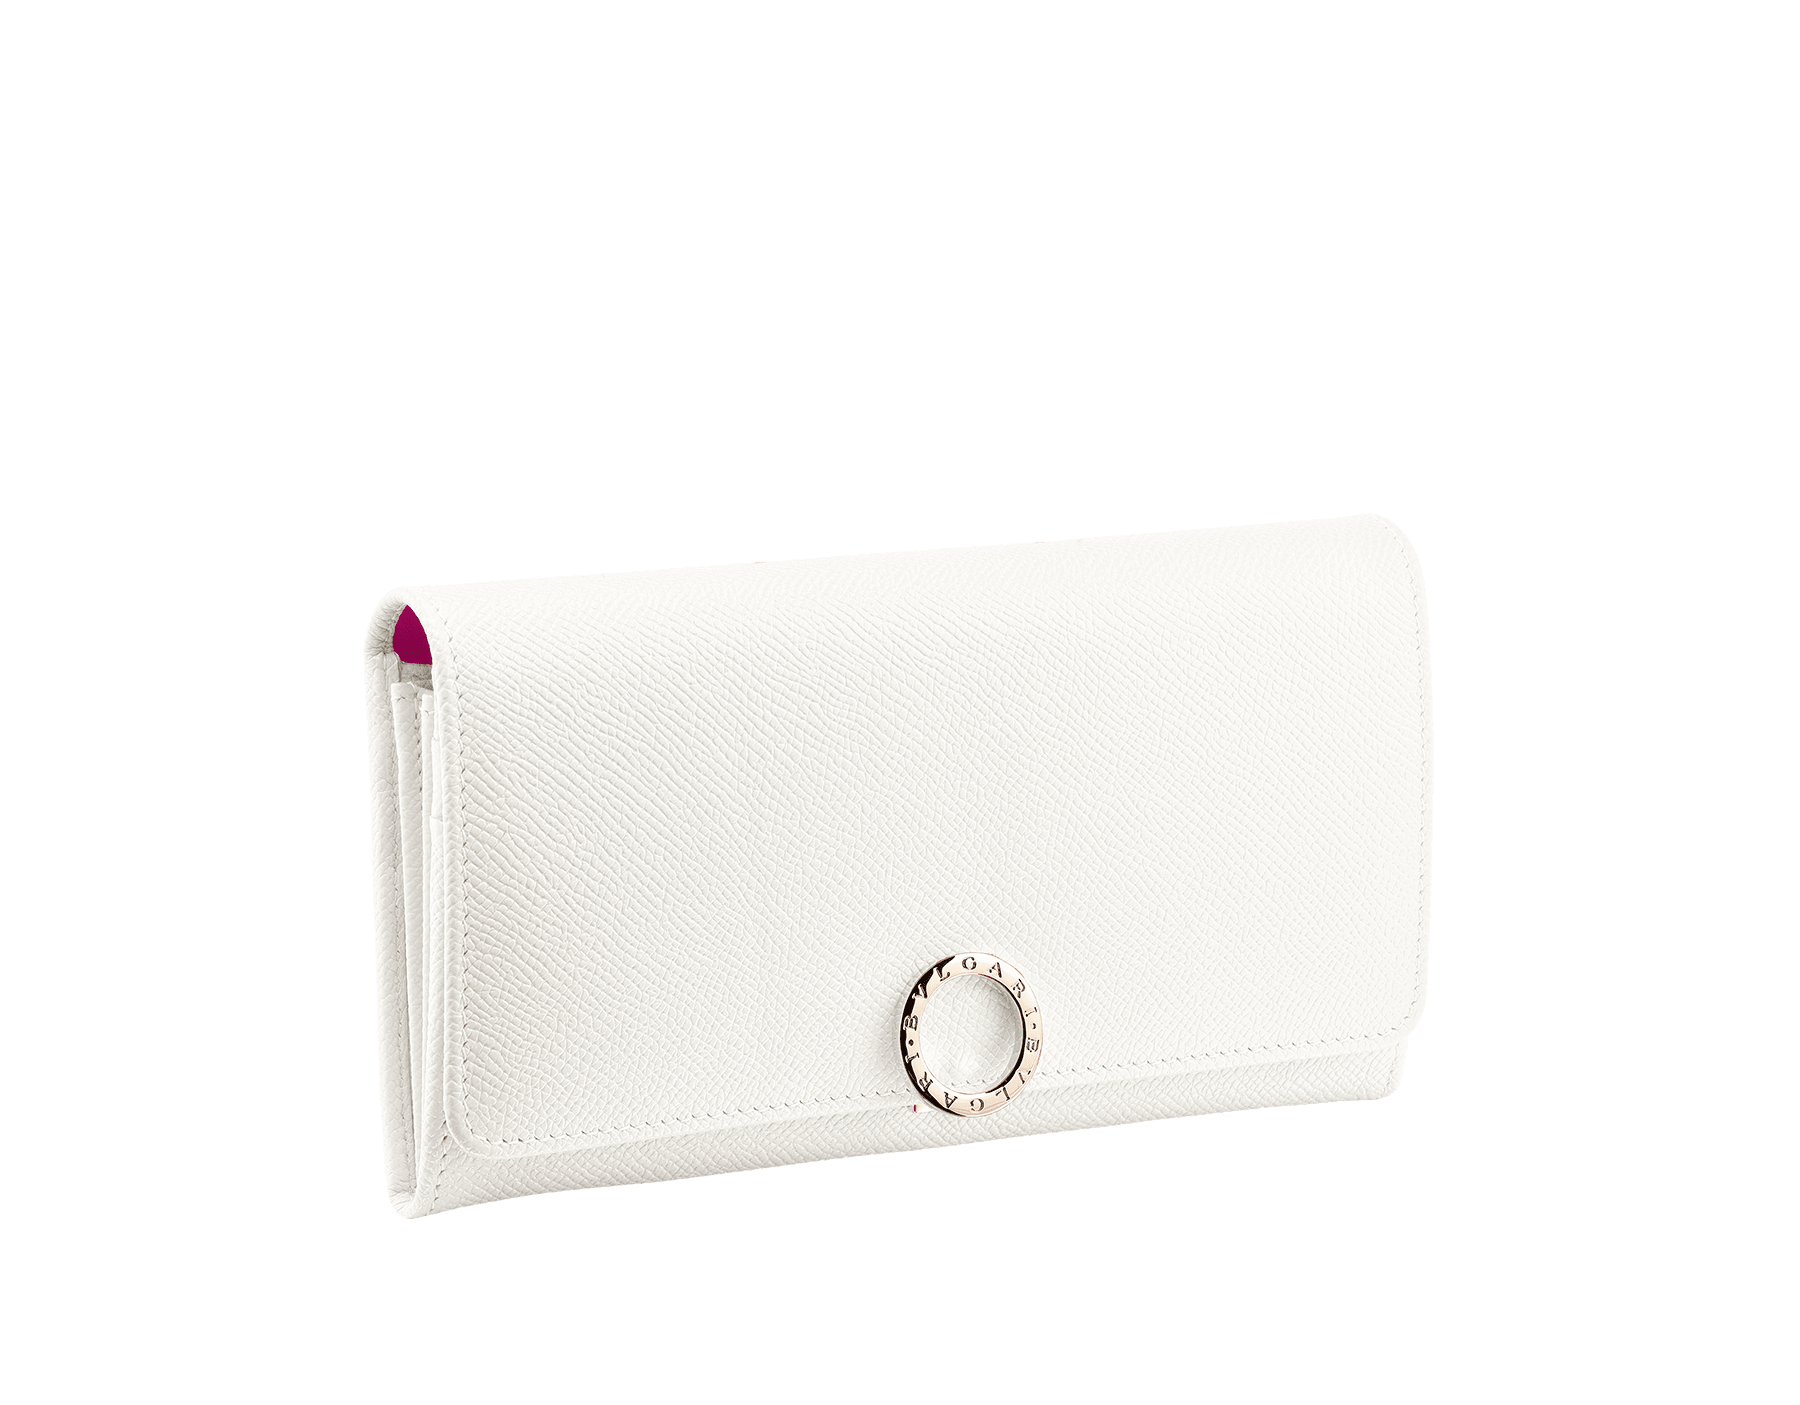 BVLGARI BVLGARI wallet pochette in cobalt tourmaline grain calf leather and aster amethyst nappa leather. Iconic logo closure clip in light gold plated brass 579-WLT-POCHE-16CCc image 1